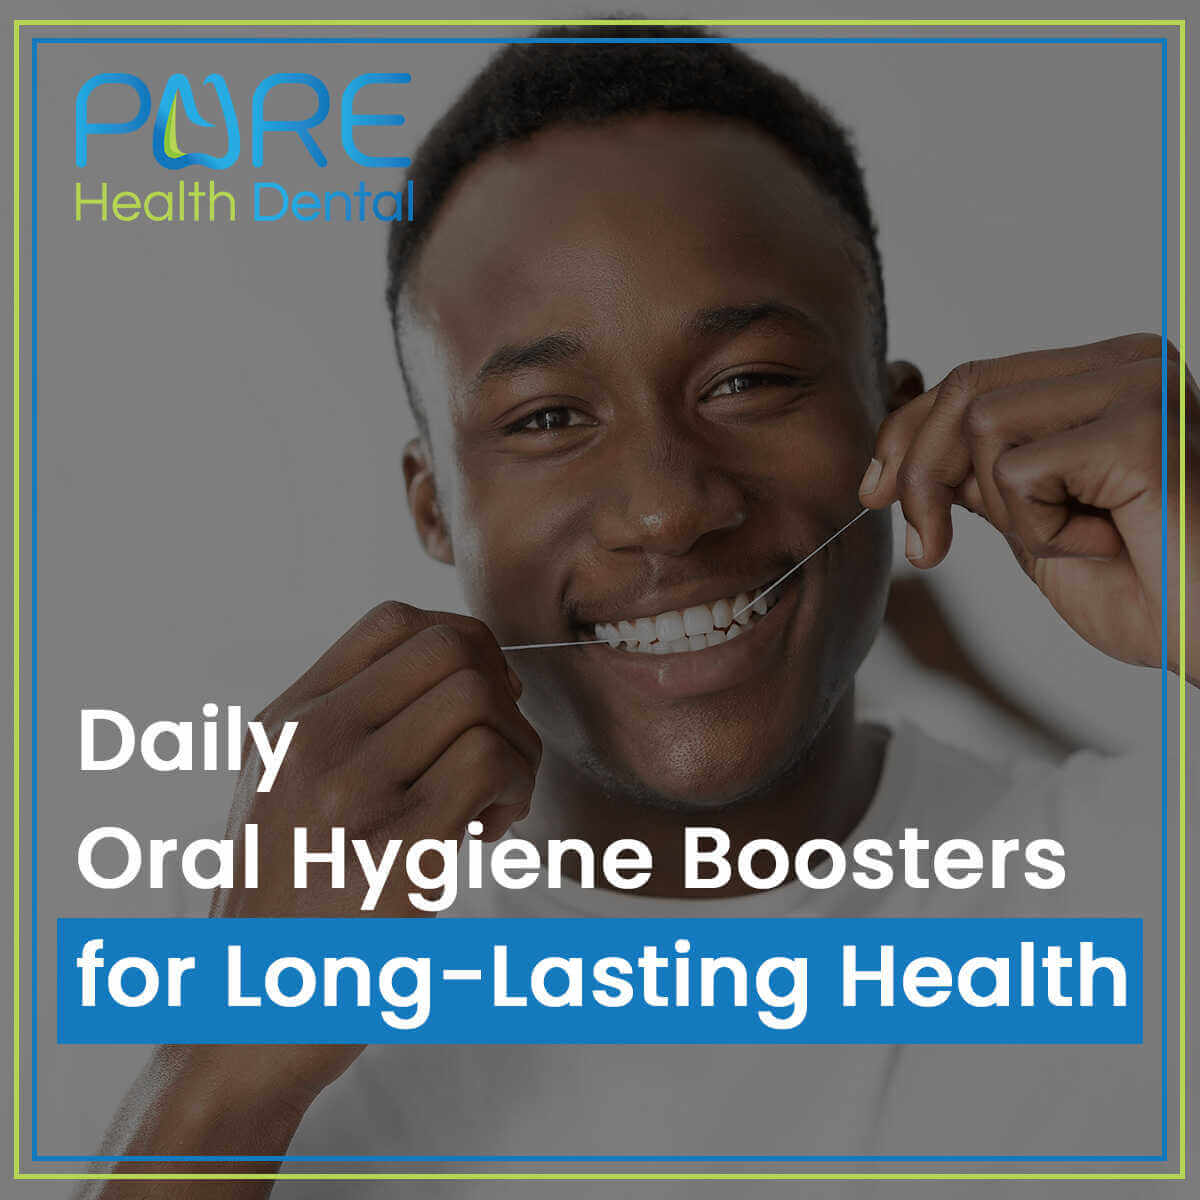 Daily Oral Hygiene Boosters For Long-Lasting Health